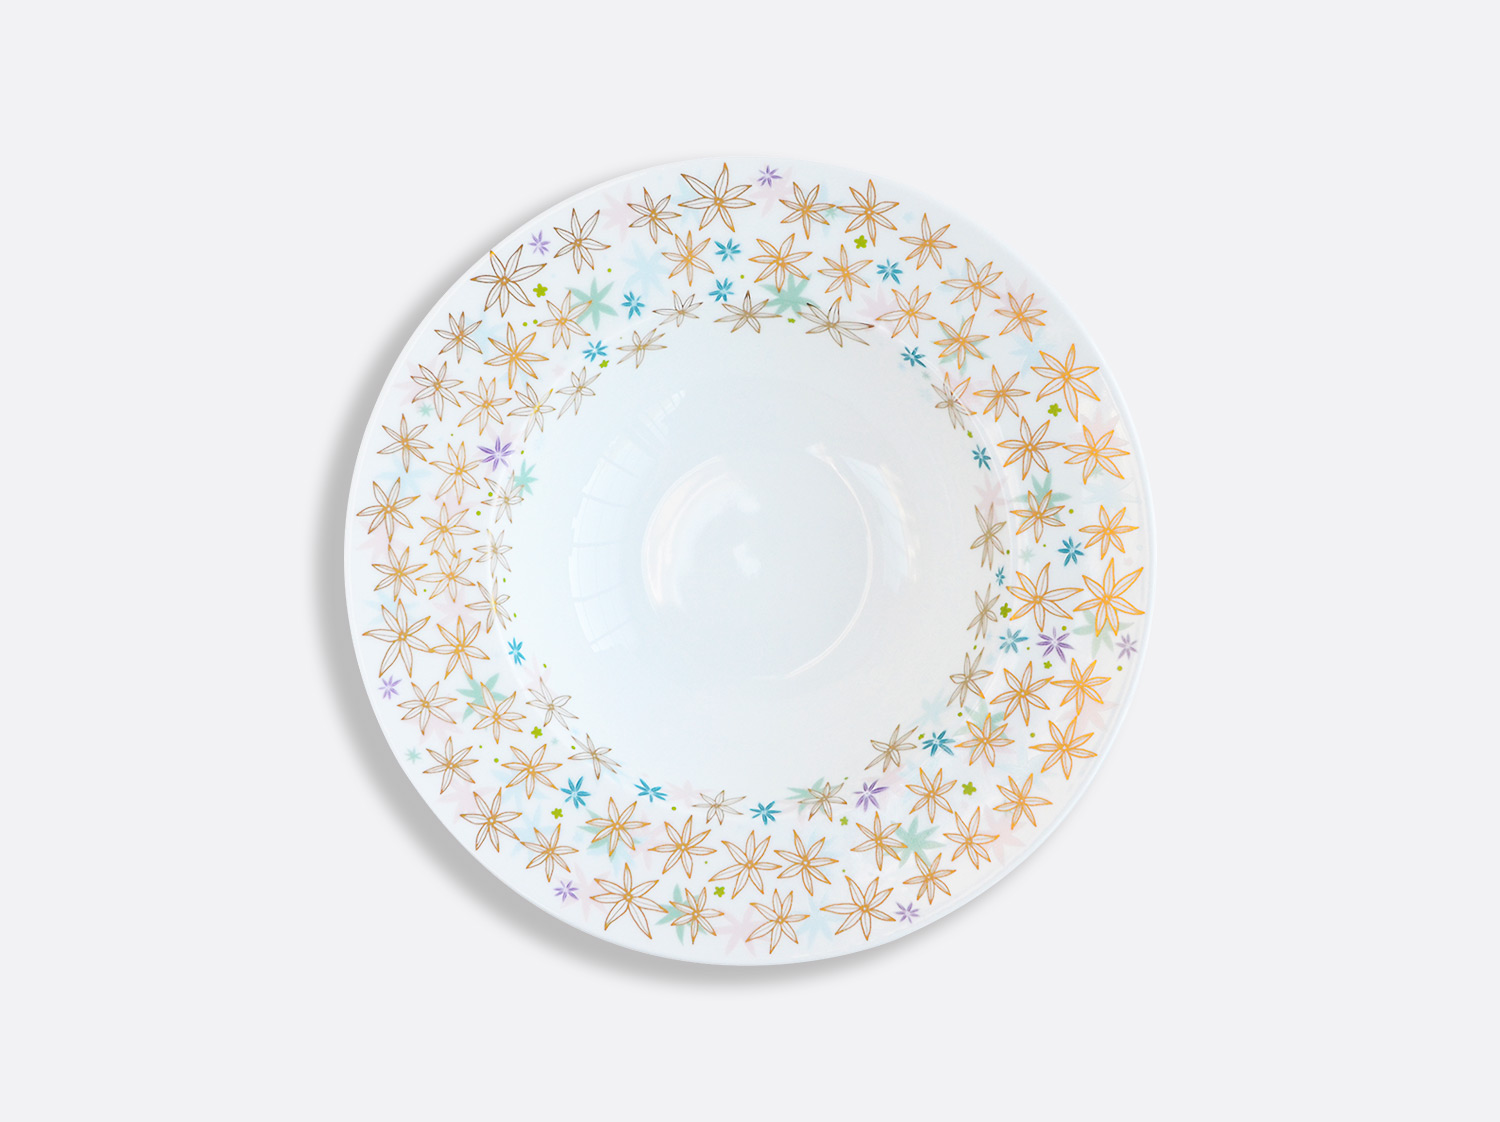 China Rim soup plate of the collection FÉERIE - MICHAËL CAILLOUX | Bernardaud